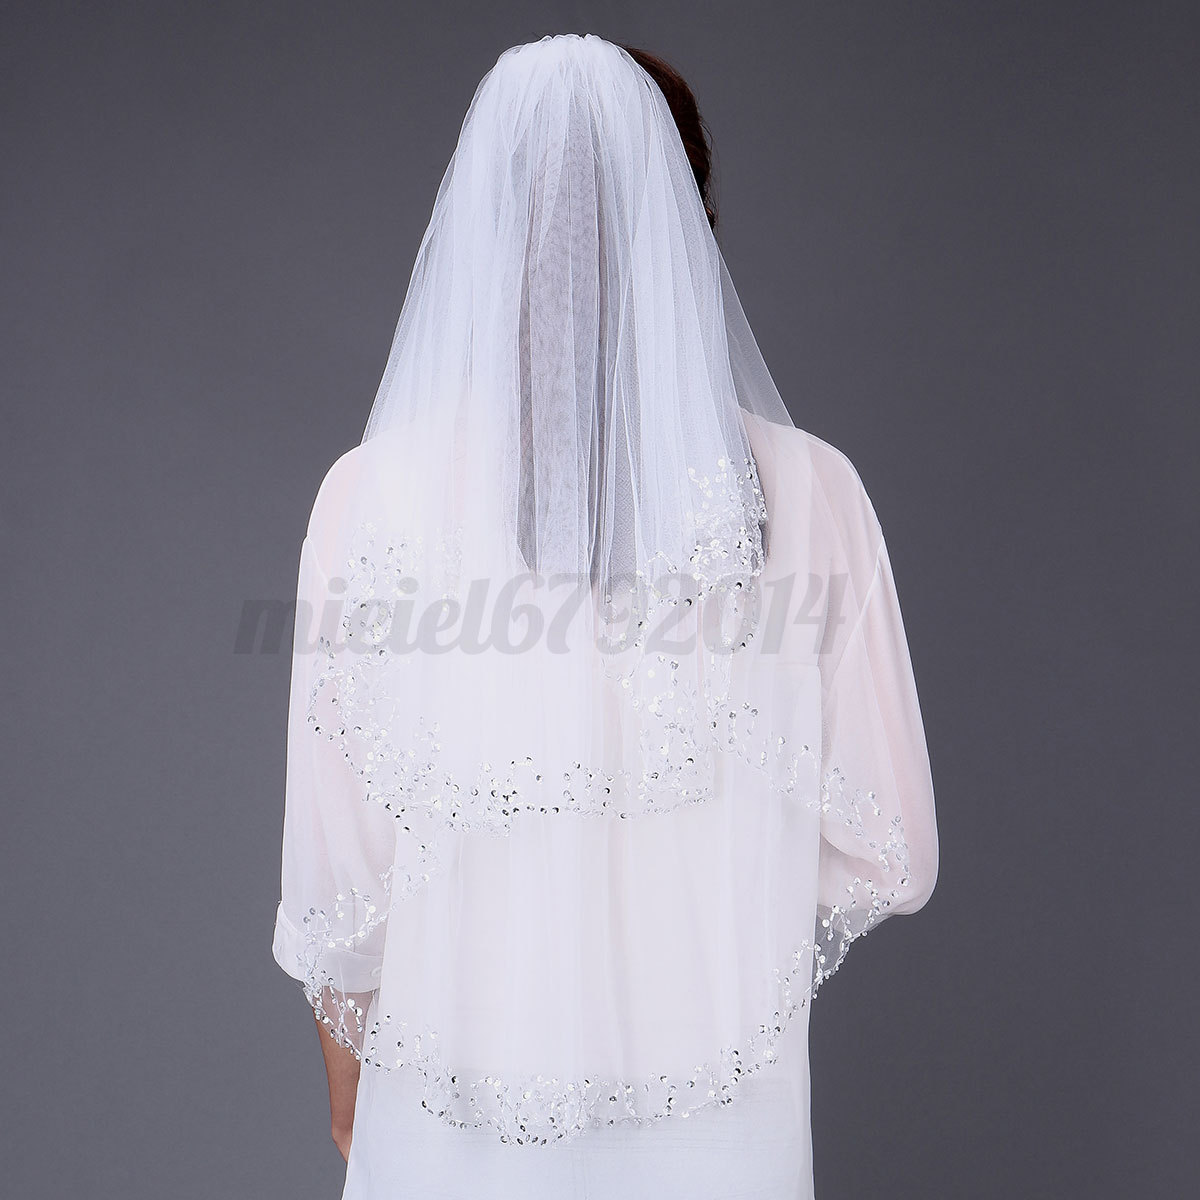 2t white ivory wedding bridal veil with comb vail